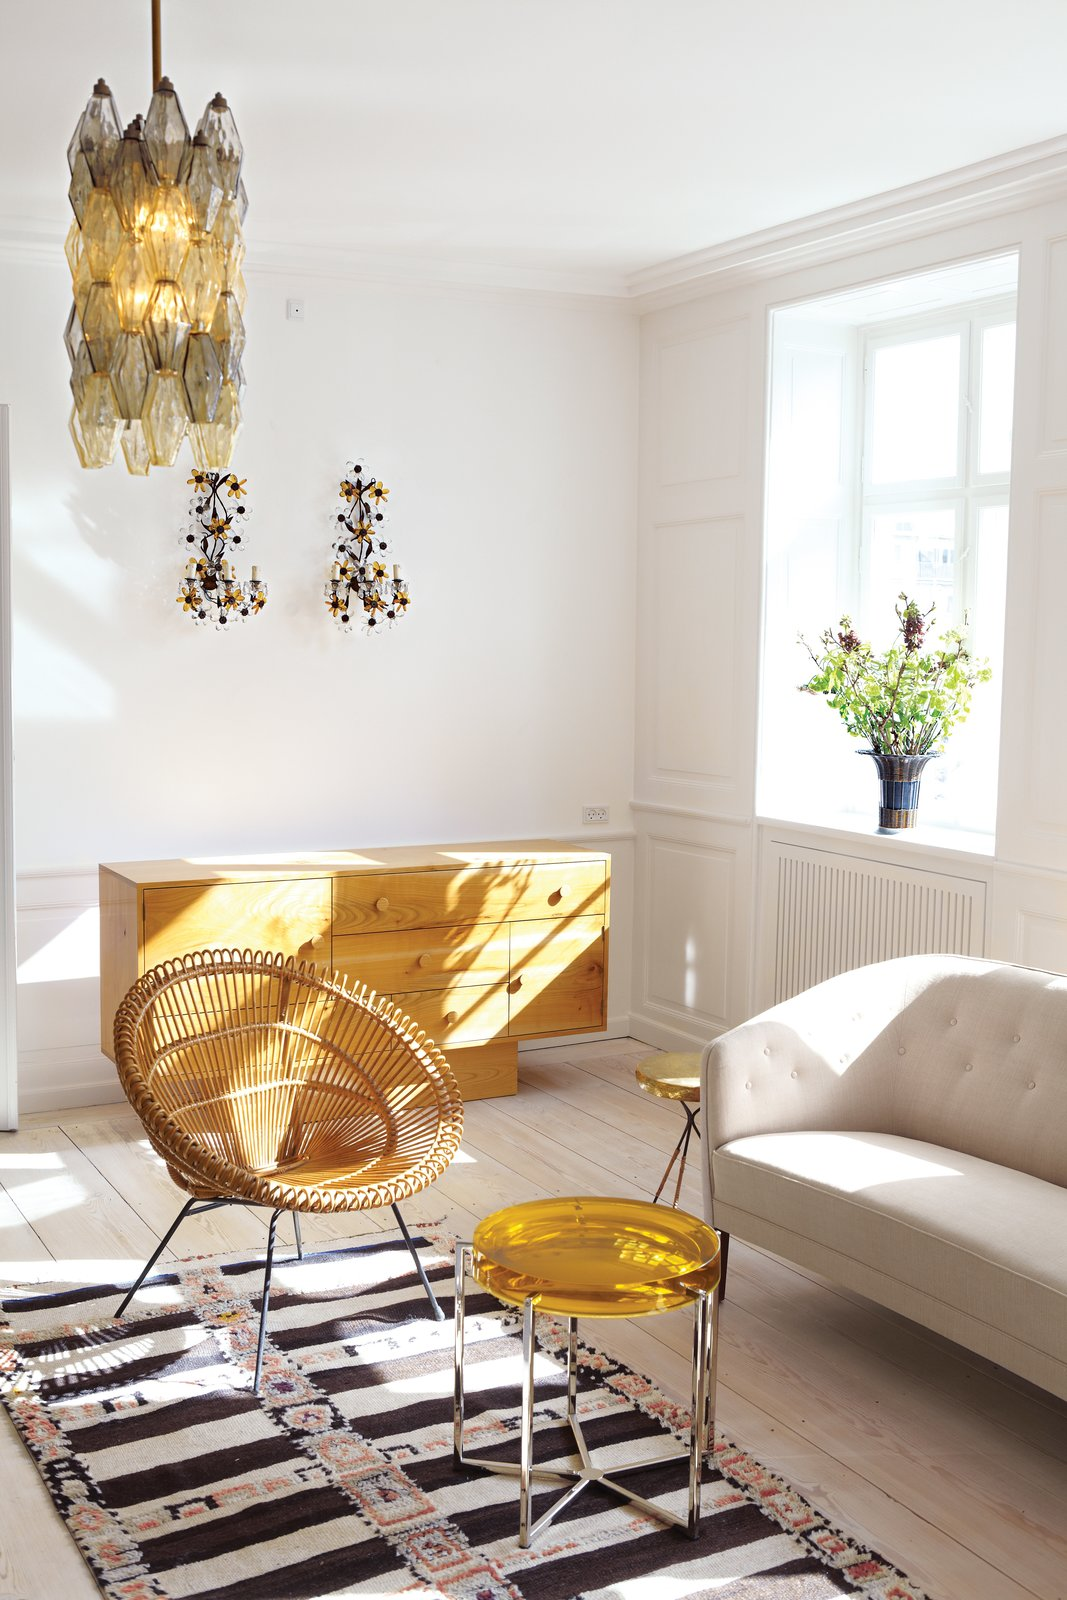 In the living room, furnishings include a cherry-wood dresser by Rune Bruun Johansen, a vintage wicker lounge chair from Italy, and a Ludvig Pontoppidan settee. The round Lens table is by McCollin Bryan. Lighting includes a circa-1950s Venini Poliedri chandelier and French floral wall sconces from the 1930s. Photos courtesy the Apartment.  Modern Danish Homes We Love from A Curated Apartment Turned Showroom in Copenhagen